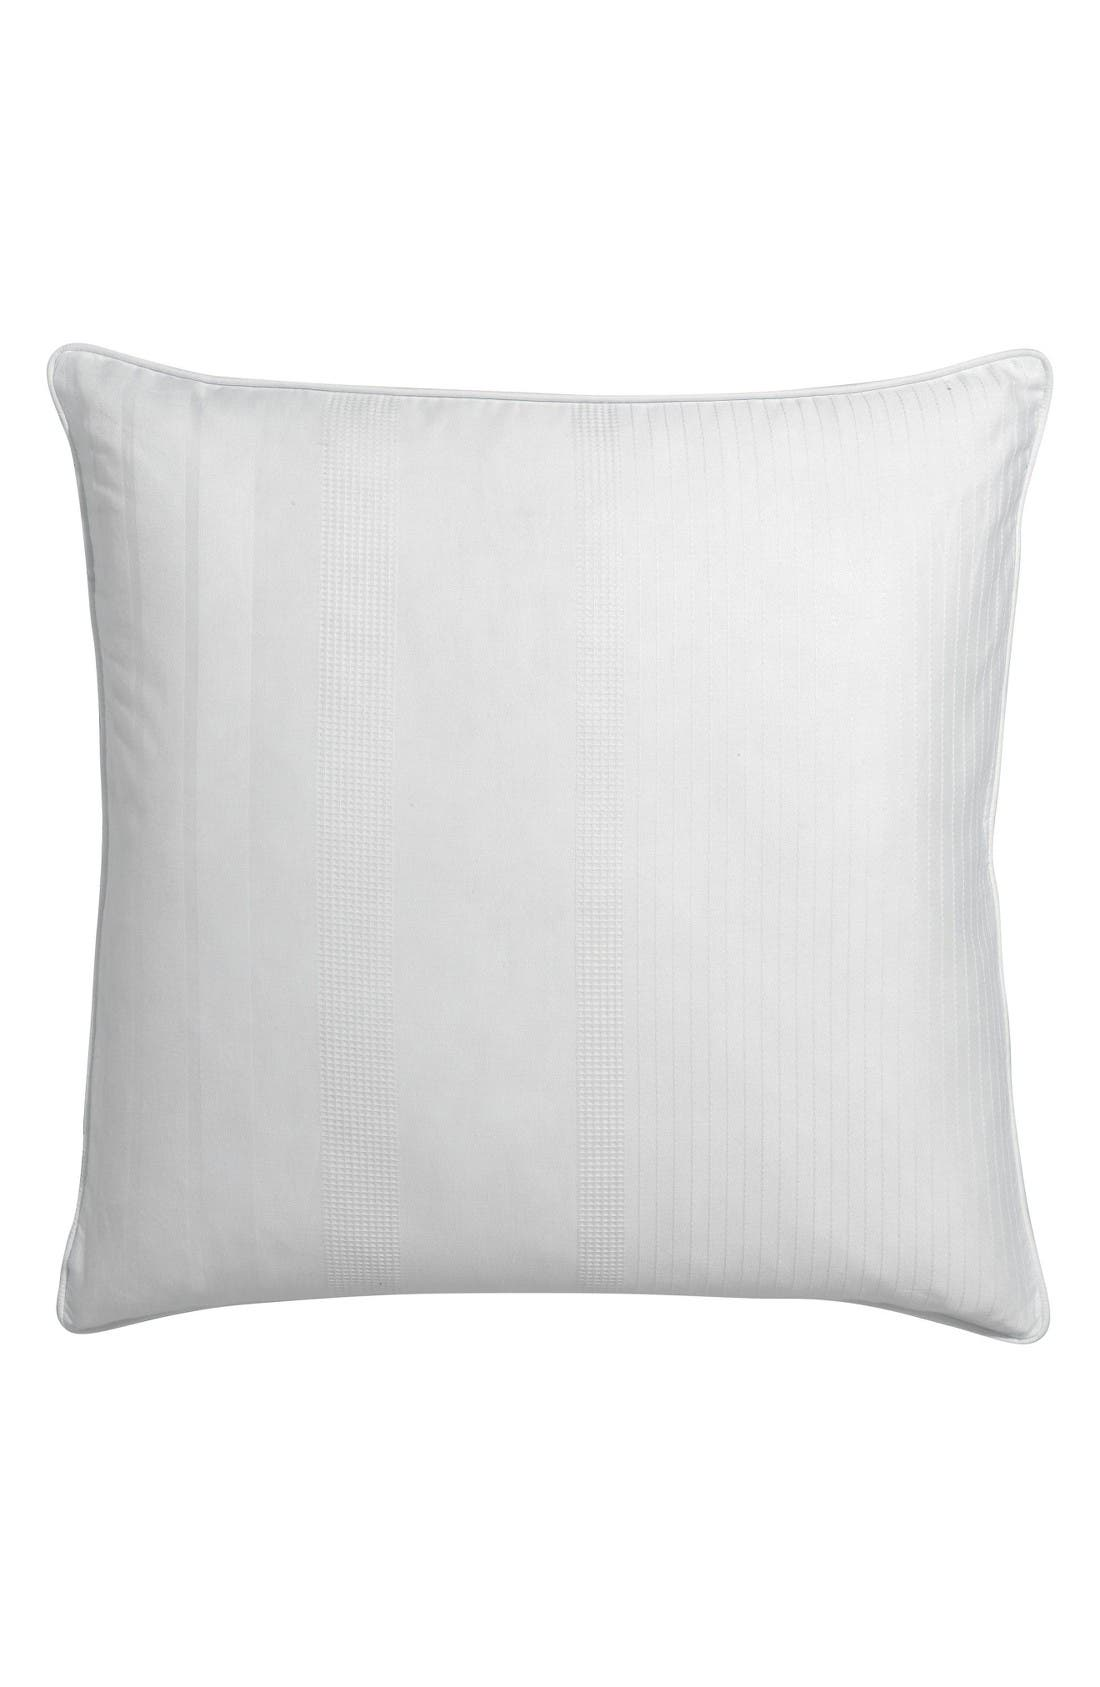 Sloane Square Organic Cotton Dobby Accent Pillow,                         Main,                         color, Cloud